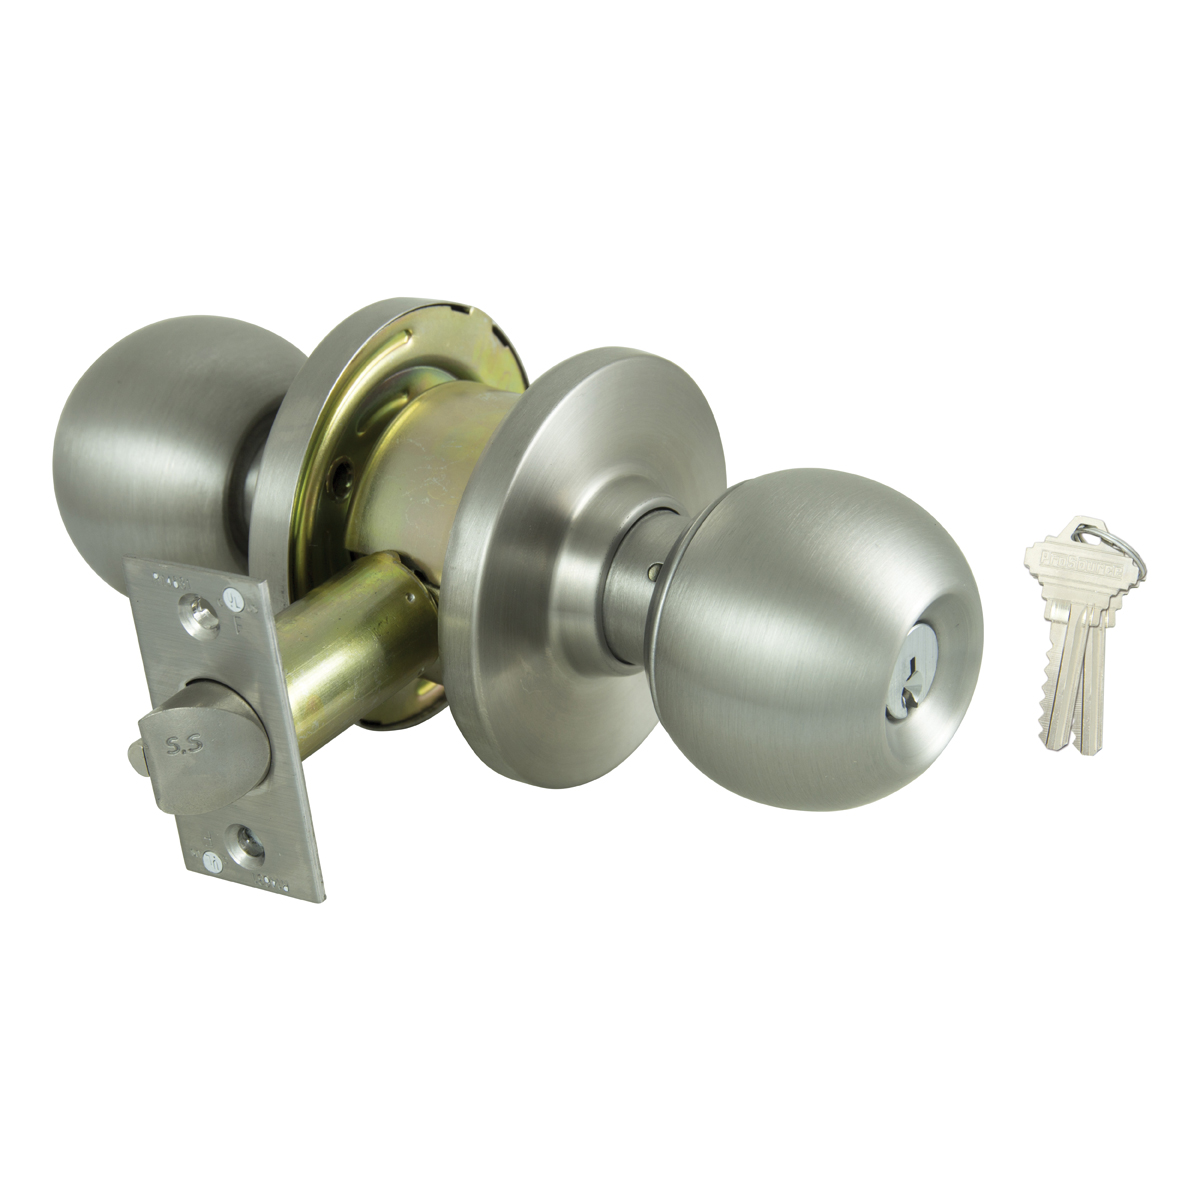 Picture of ProSource C368BV-PS Knob Set, 2 Grade, Metal, 2-3/8 x 2-3/4 in Backset, Keyed Different Keyway